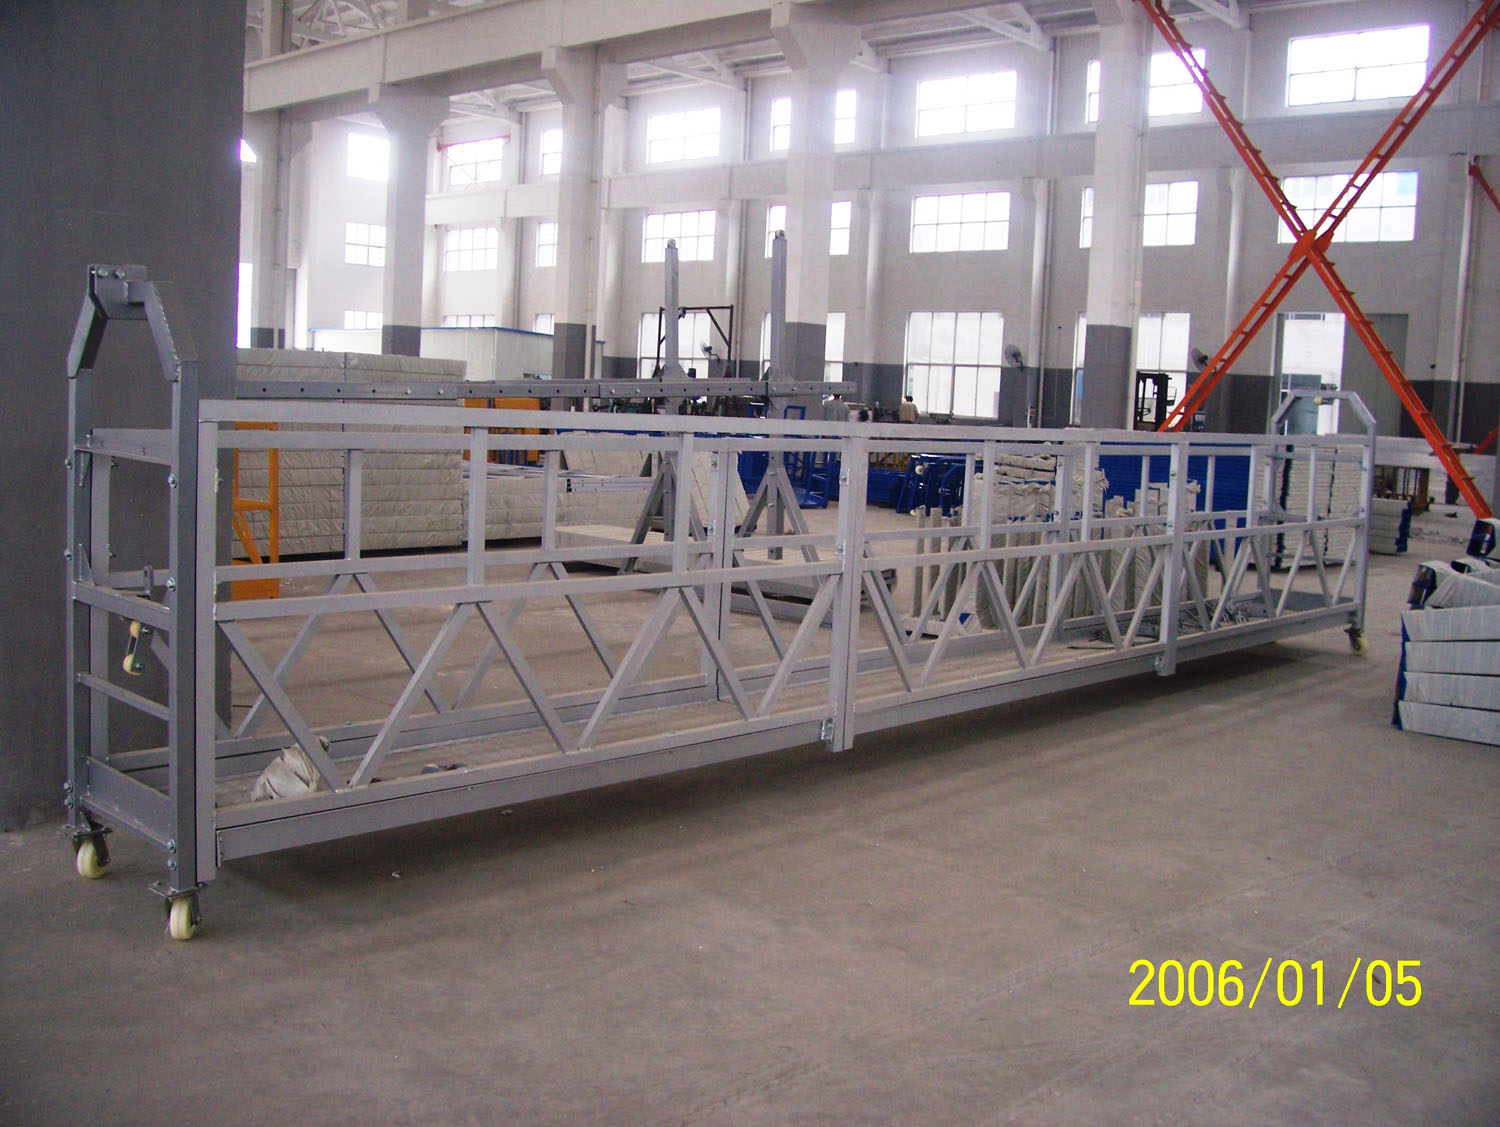 7.5M Aerial Rope Suspended Platform ZLP800 for Building Maintenance with Steel Rope